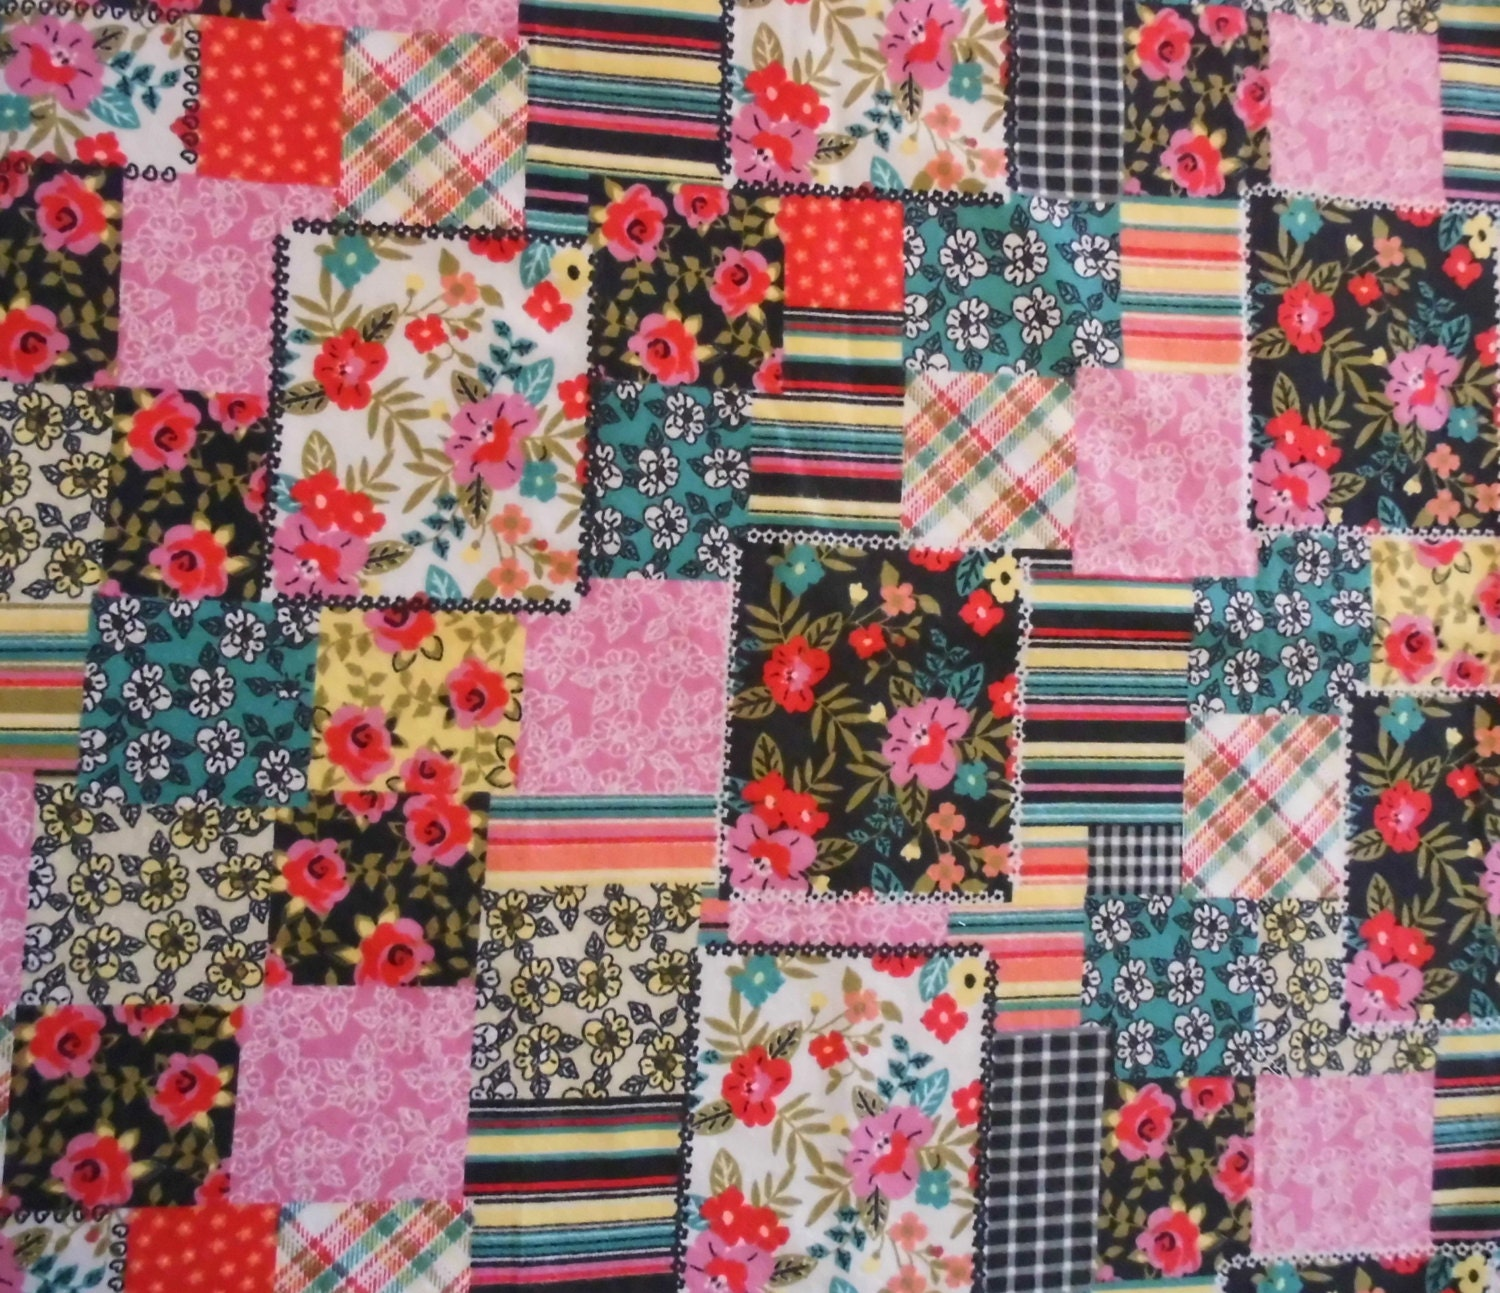 Fabric cotton flannel sewing quilting fabric by the yard for Sewing fabric by the yard